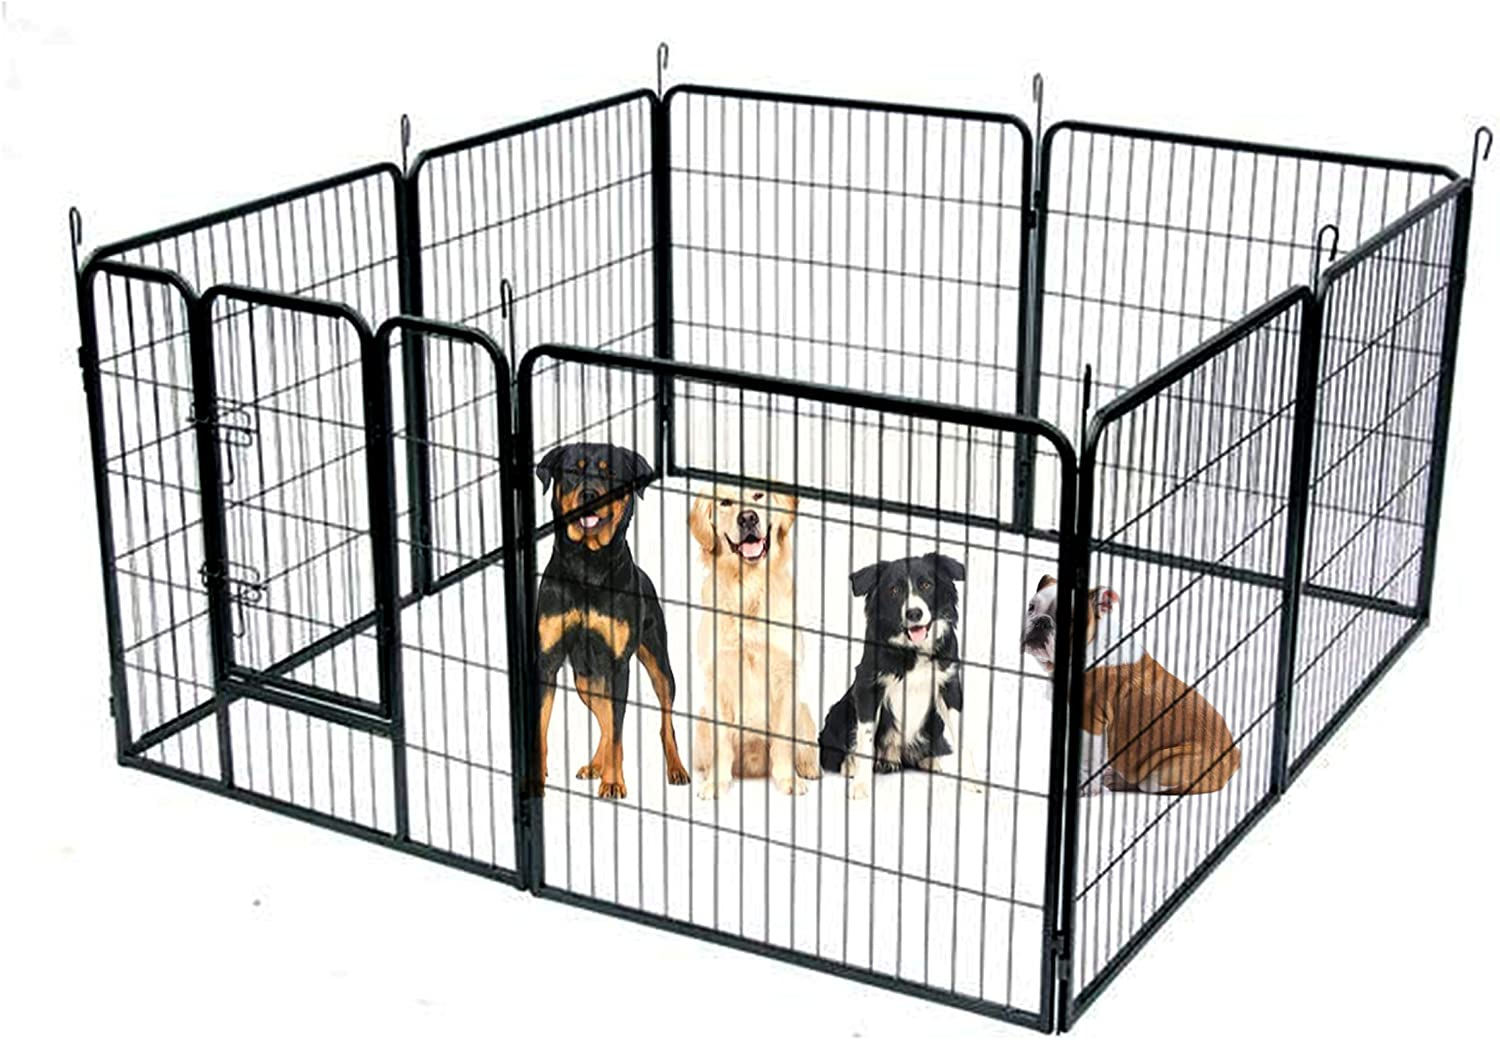 Heavy Duty Exercise Play Pen 41 Inch With Door Sturdy Dog Black Metal Large Pet 8 Panels Inside Kennel Corral Xl Playpen High Gated Puppy Ebook Pet Supplies